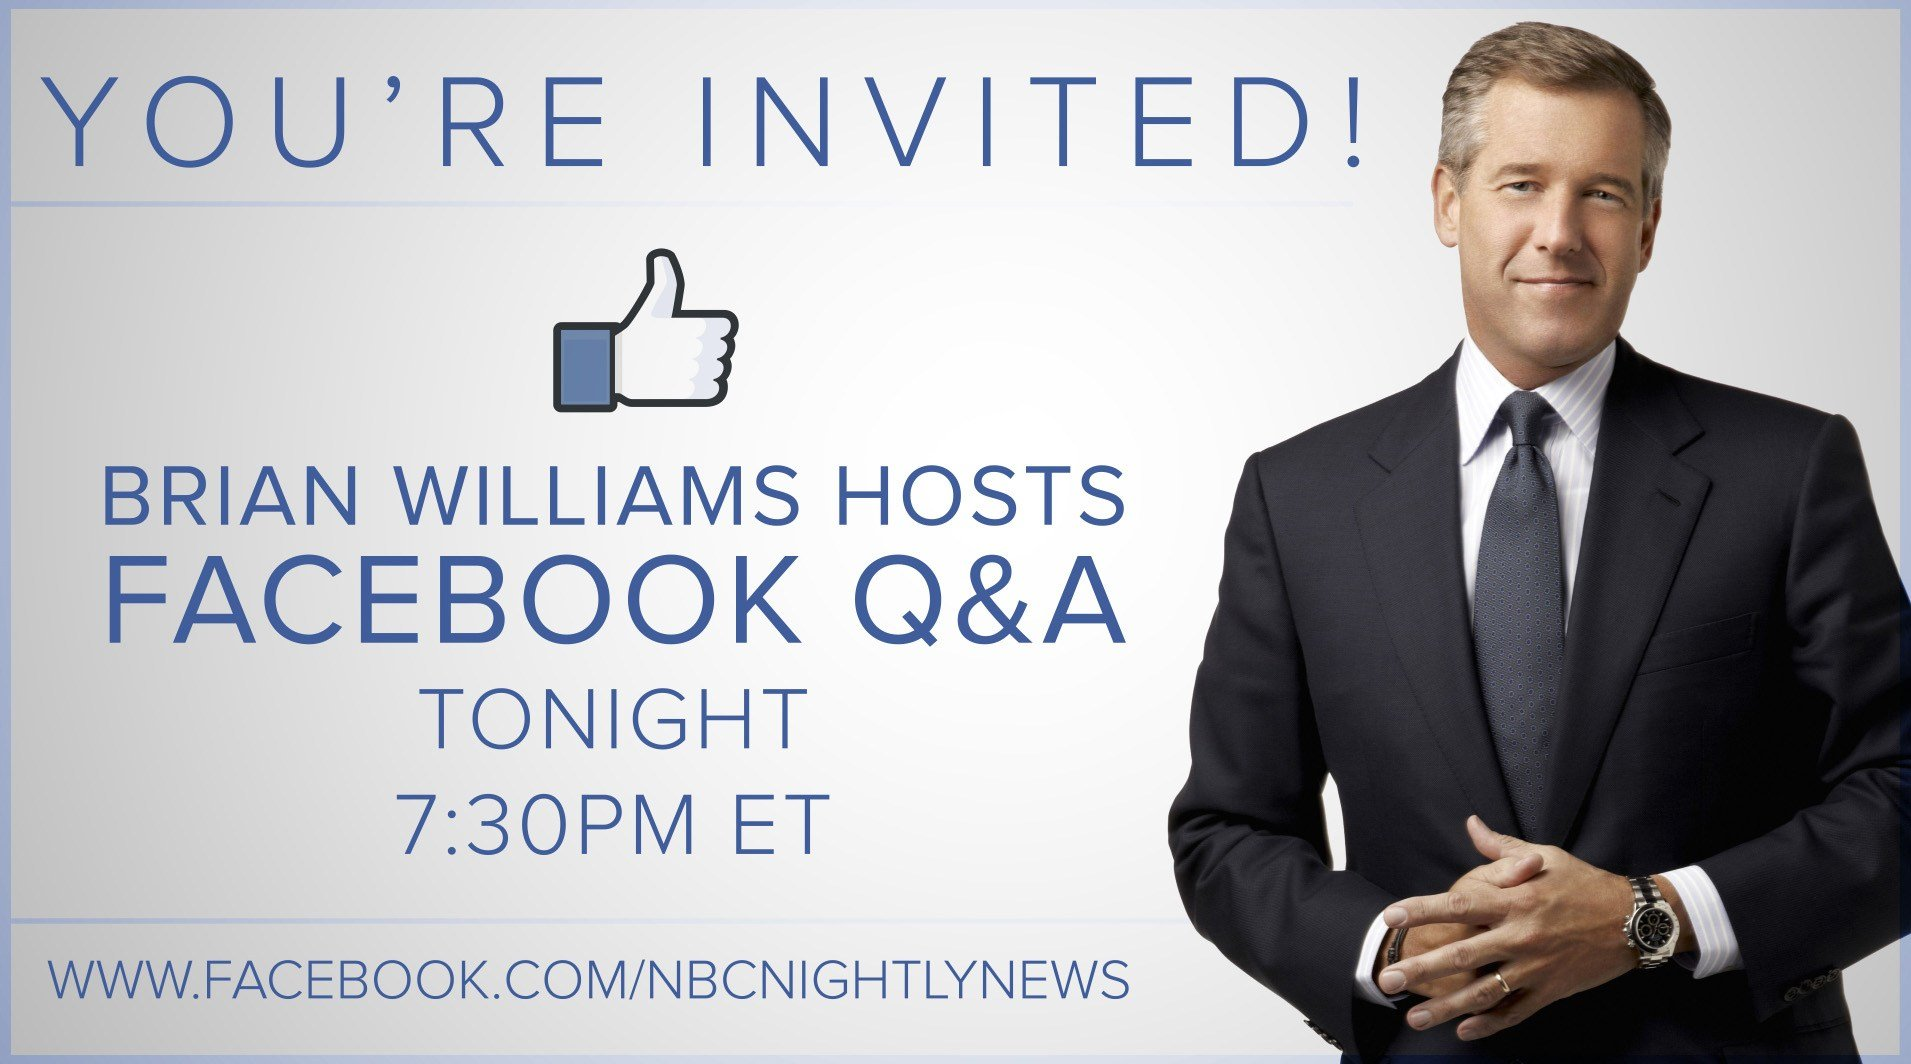 Facebook Q&A session with Brian Williams at 4:30 pst